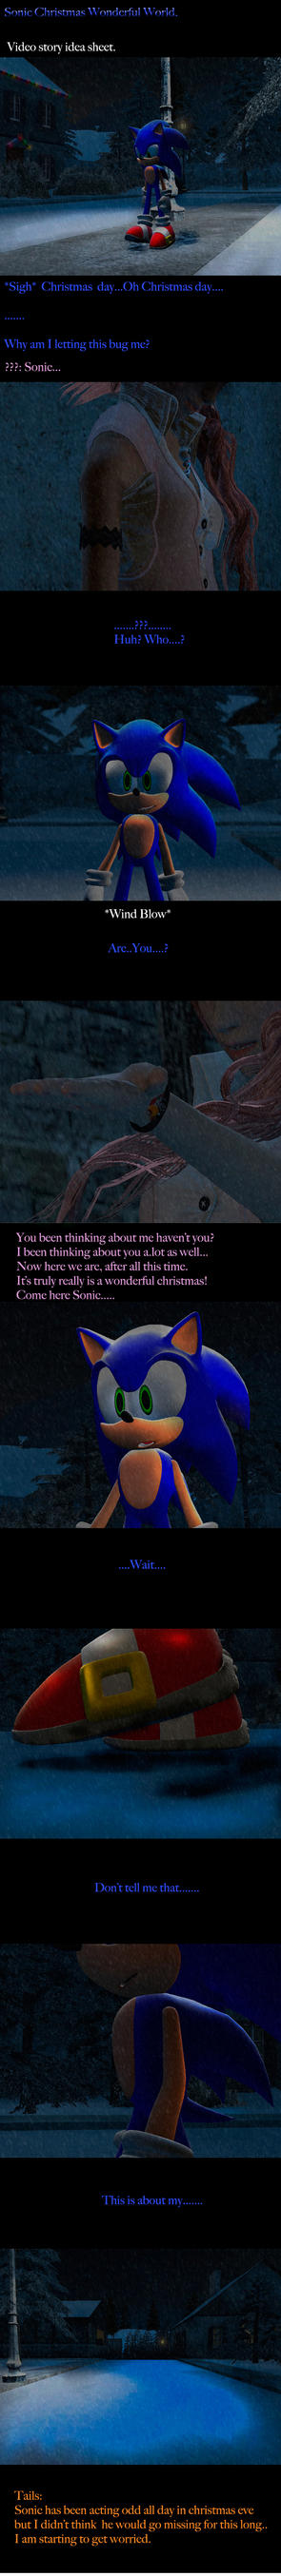 Sonic The Hedgehog Christmas Wonderful World by shadow759